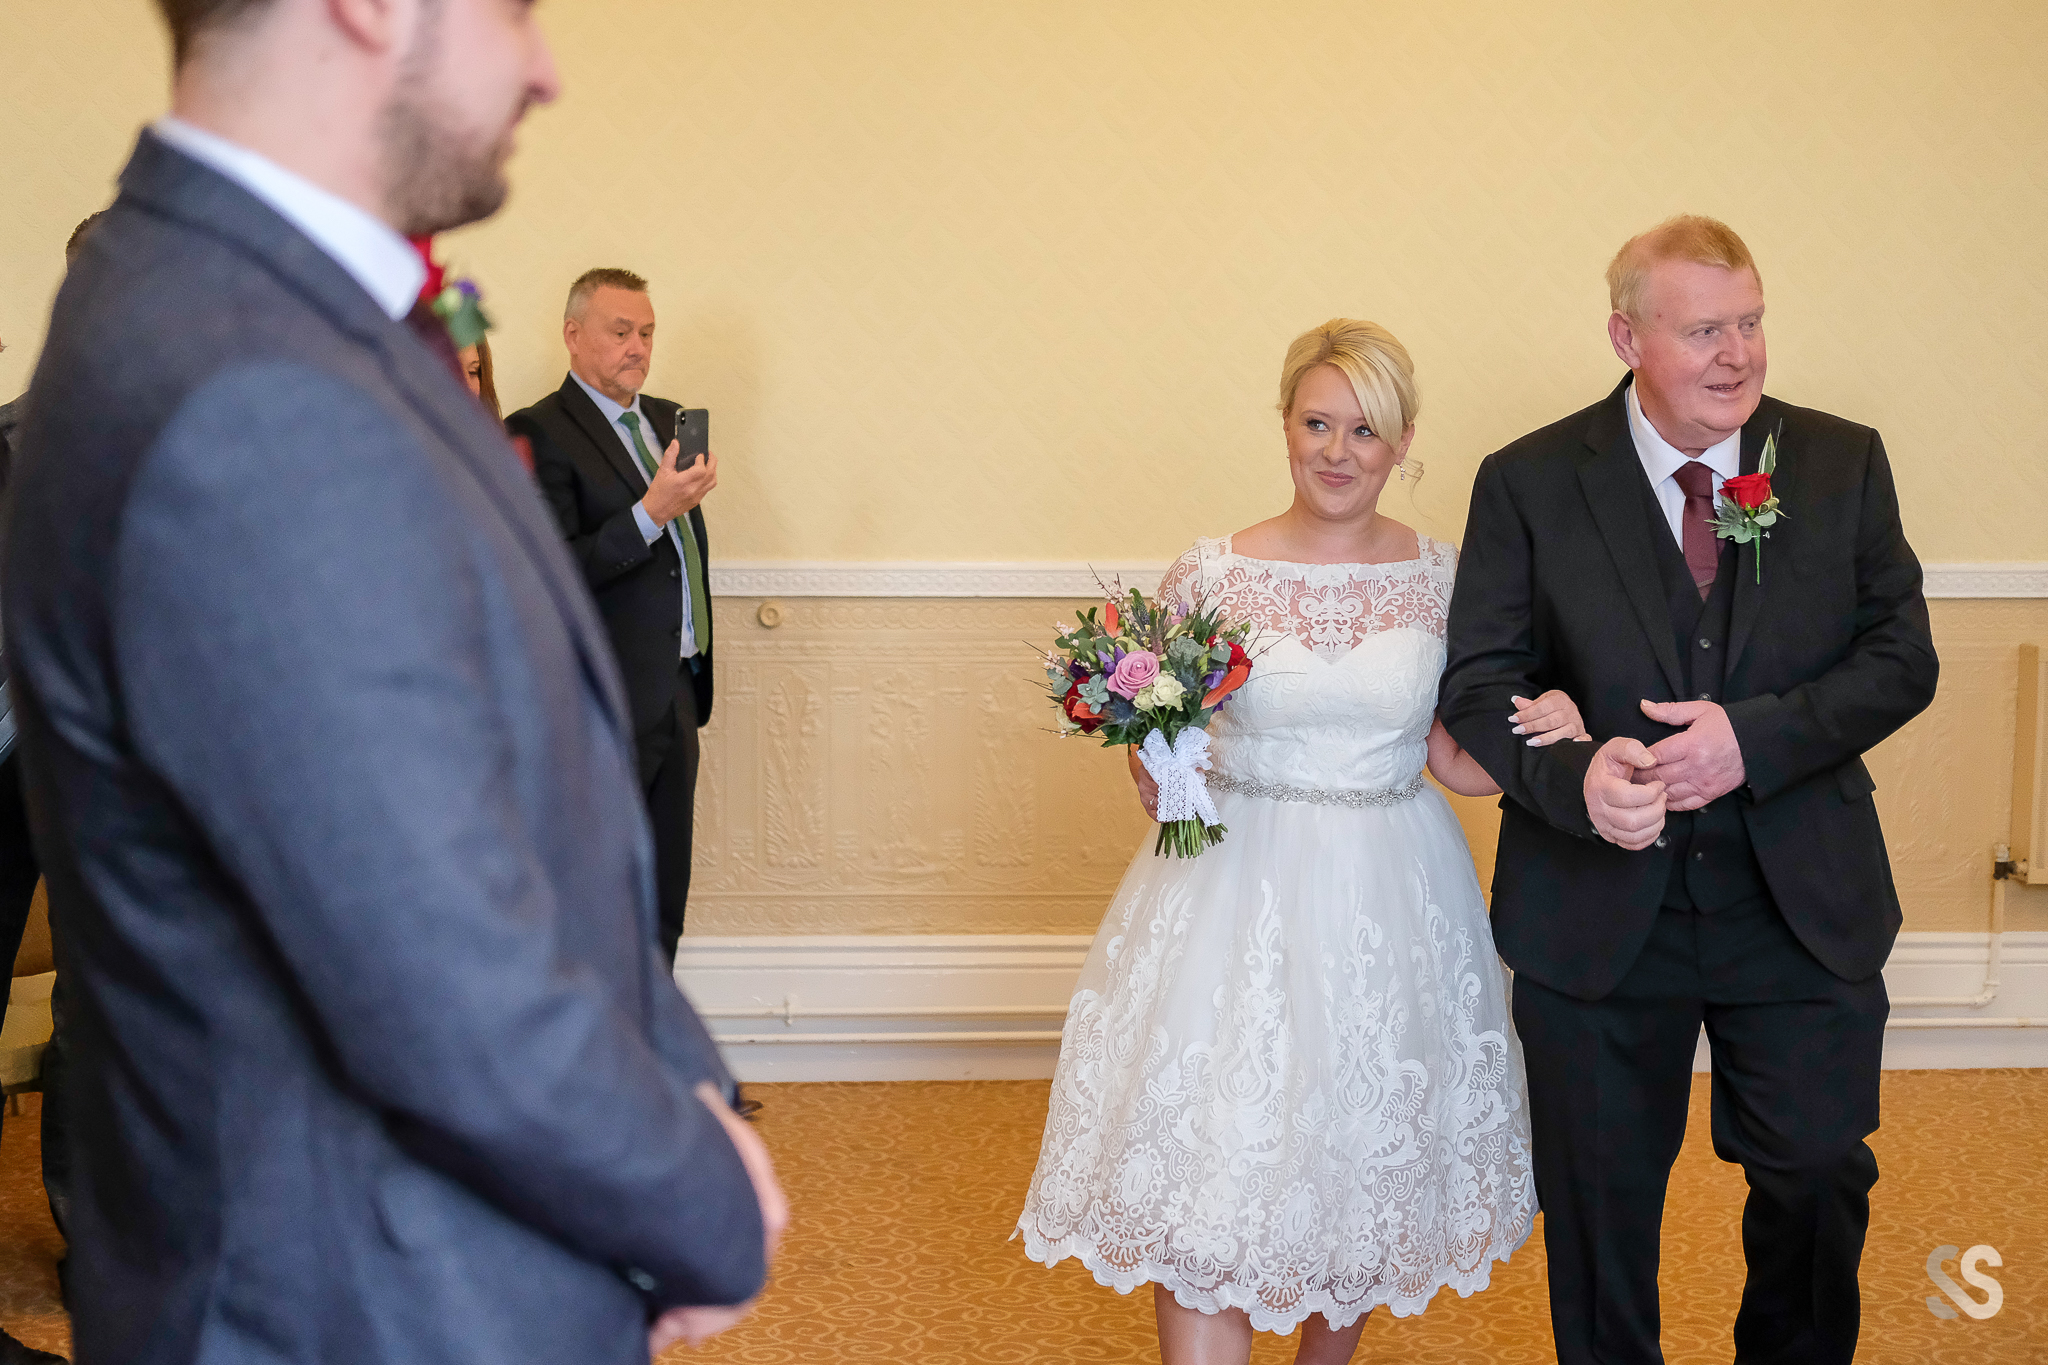 scott wedding photographer stoke 9.jpg